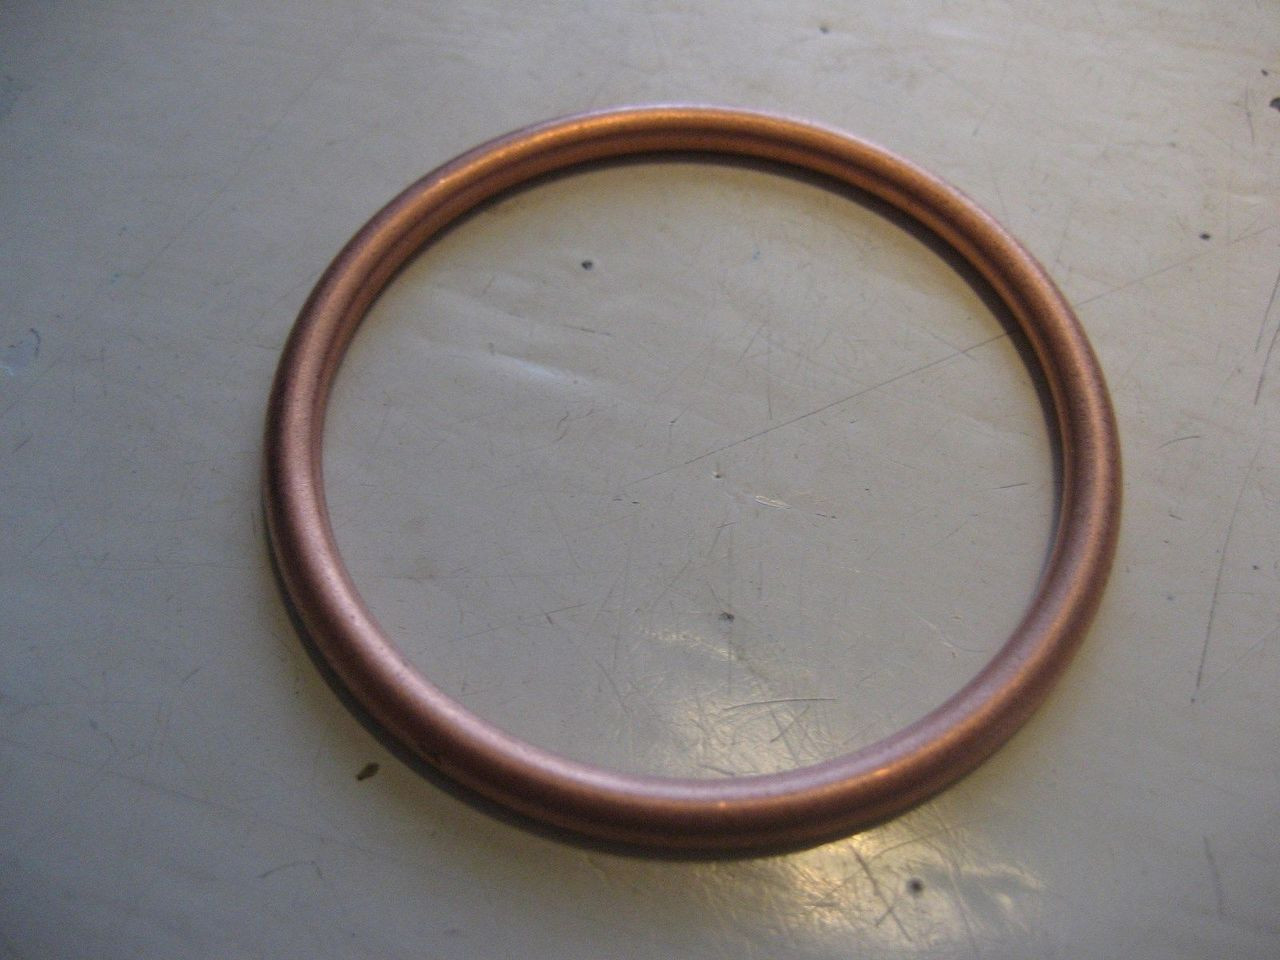 NEW VINTAGE BMW EXHAUST PIPE COLLAR COPPER CRUSH GASKET CRUSH RING R24-R60/2 NEW - 07 11 9 963 470